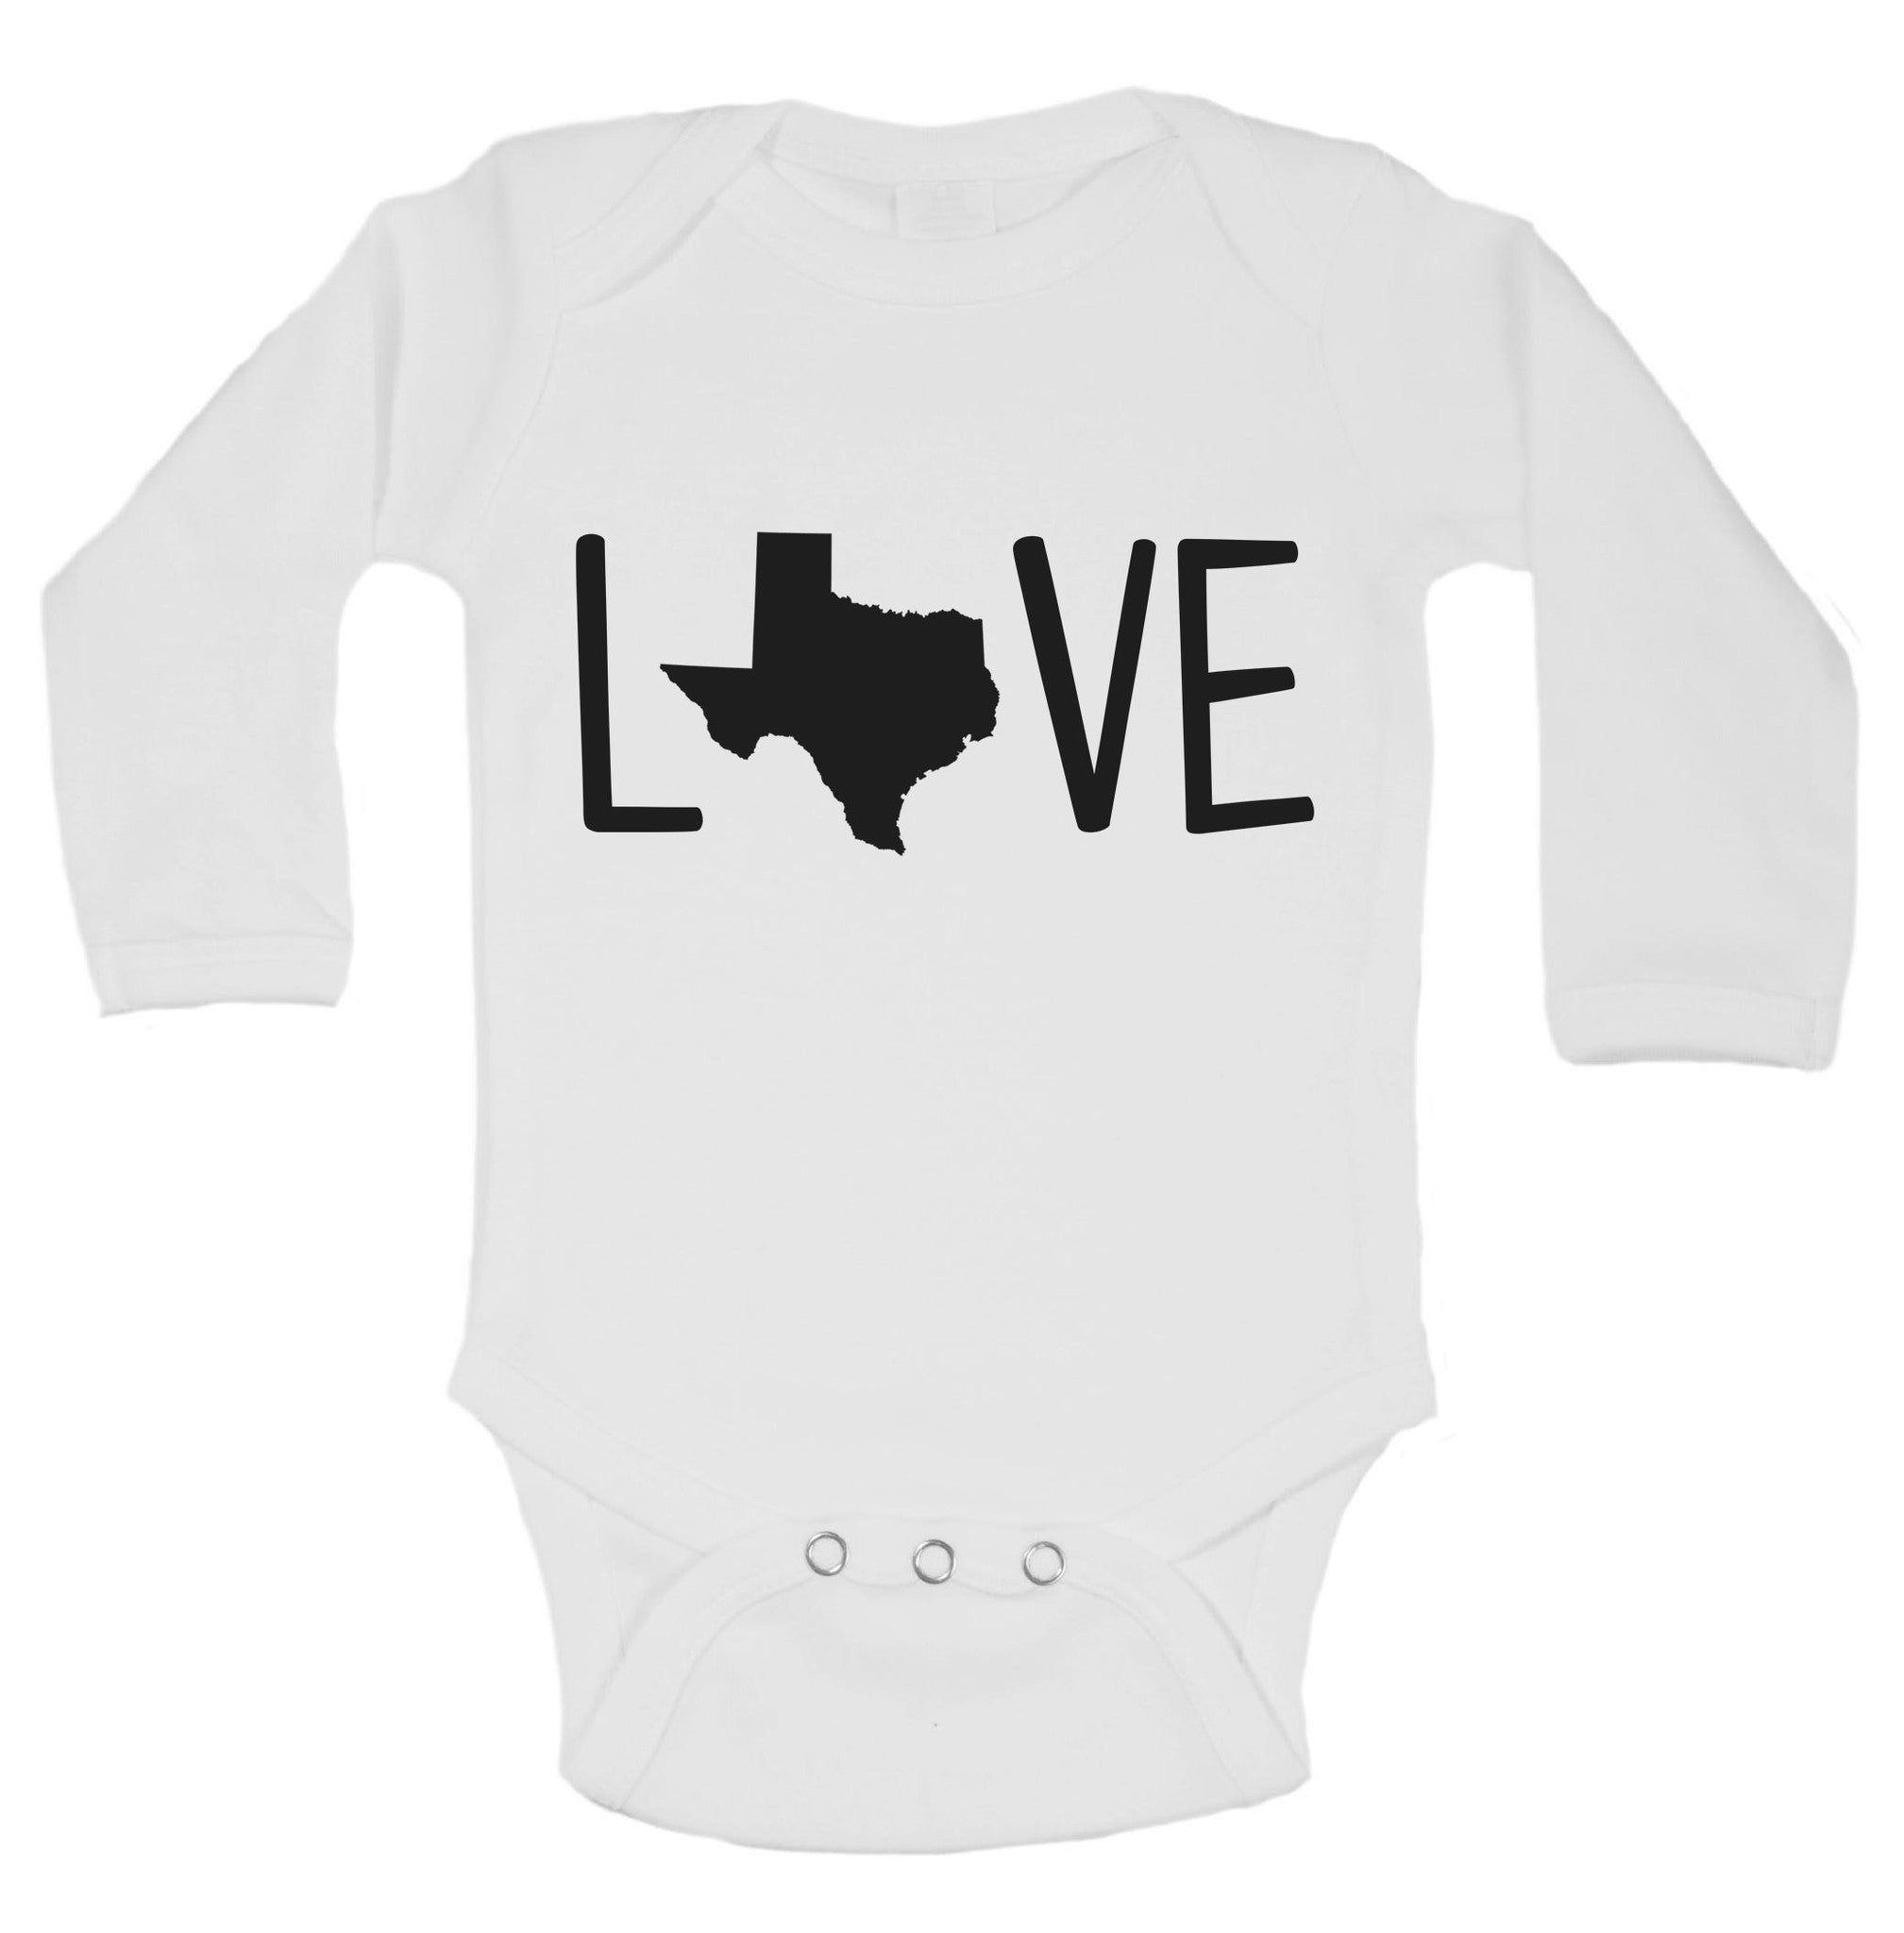 Love Funny Kids Onesie - B143 - Funny Shirts Tank Tops Burnouts and Triblends  - 1